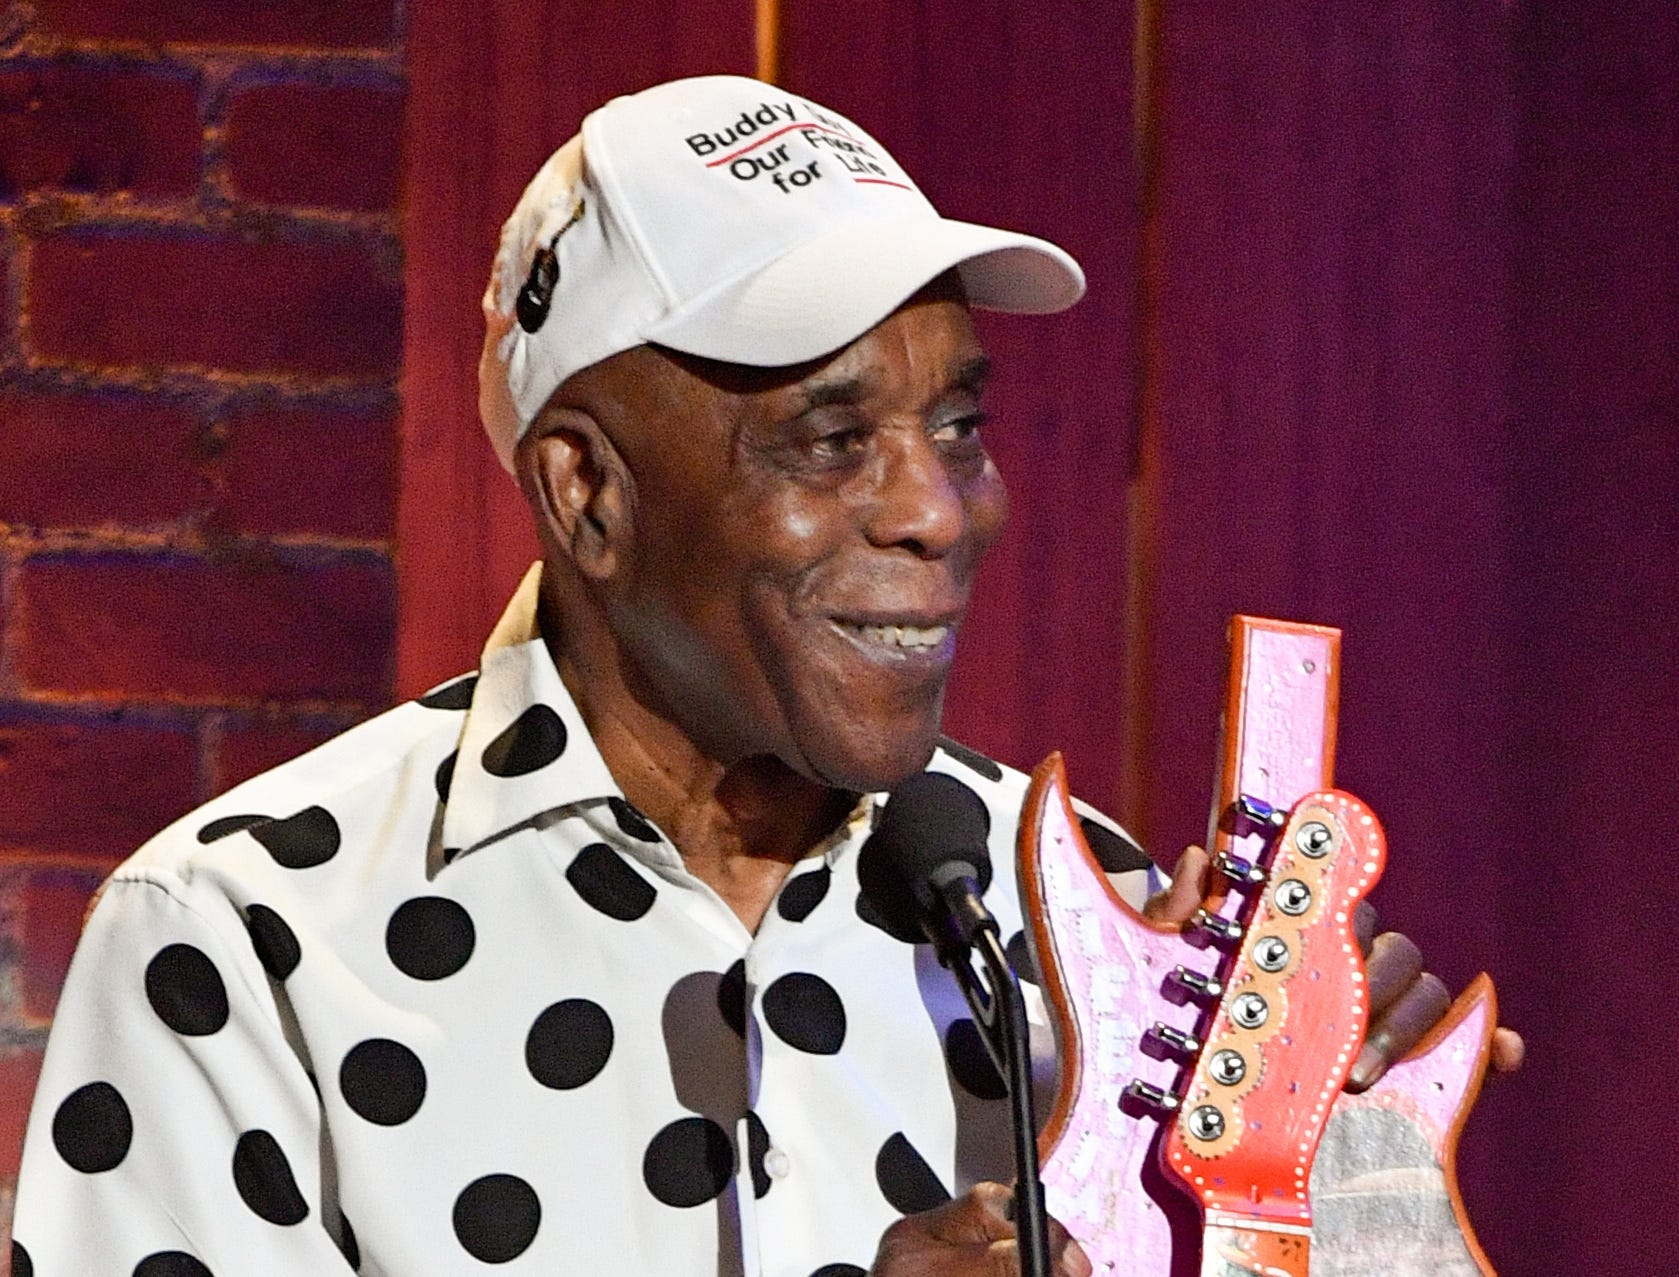 Buddy Guy accepts the Lifetime Instrumentalist award during the 2018 Americana Honors and Awards show at the Ryman Auditorium in Nashville, Tenn., Wednesday, Sept. 12, 2018.